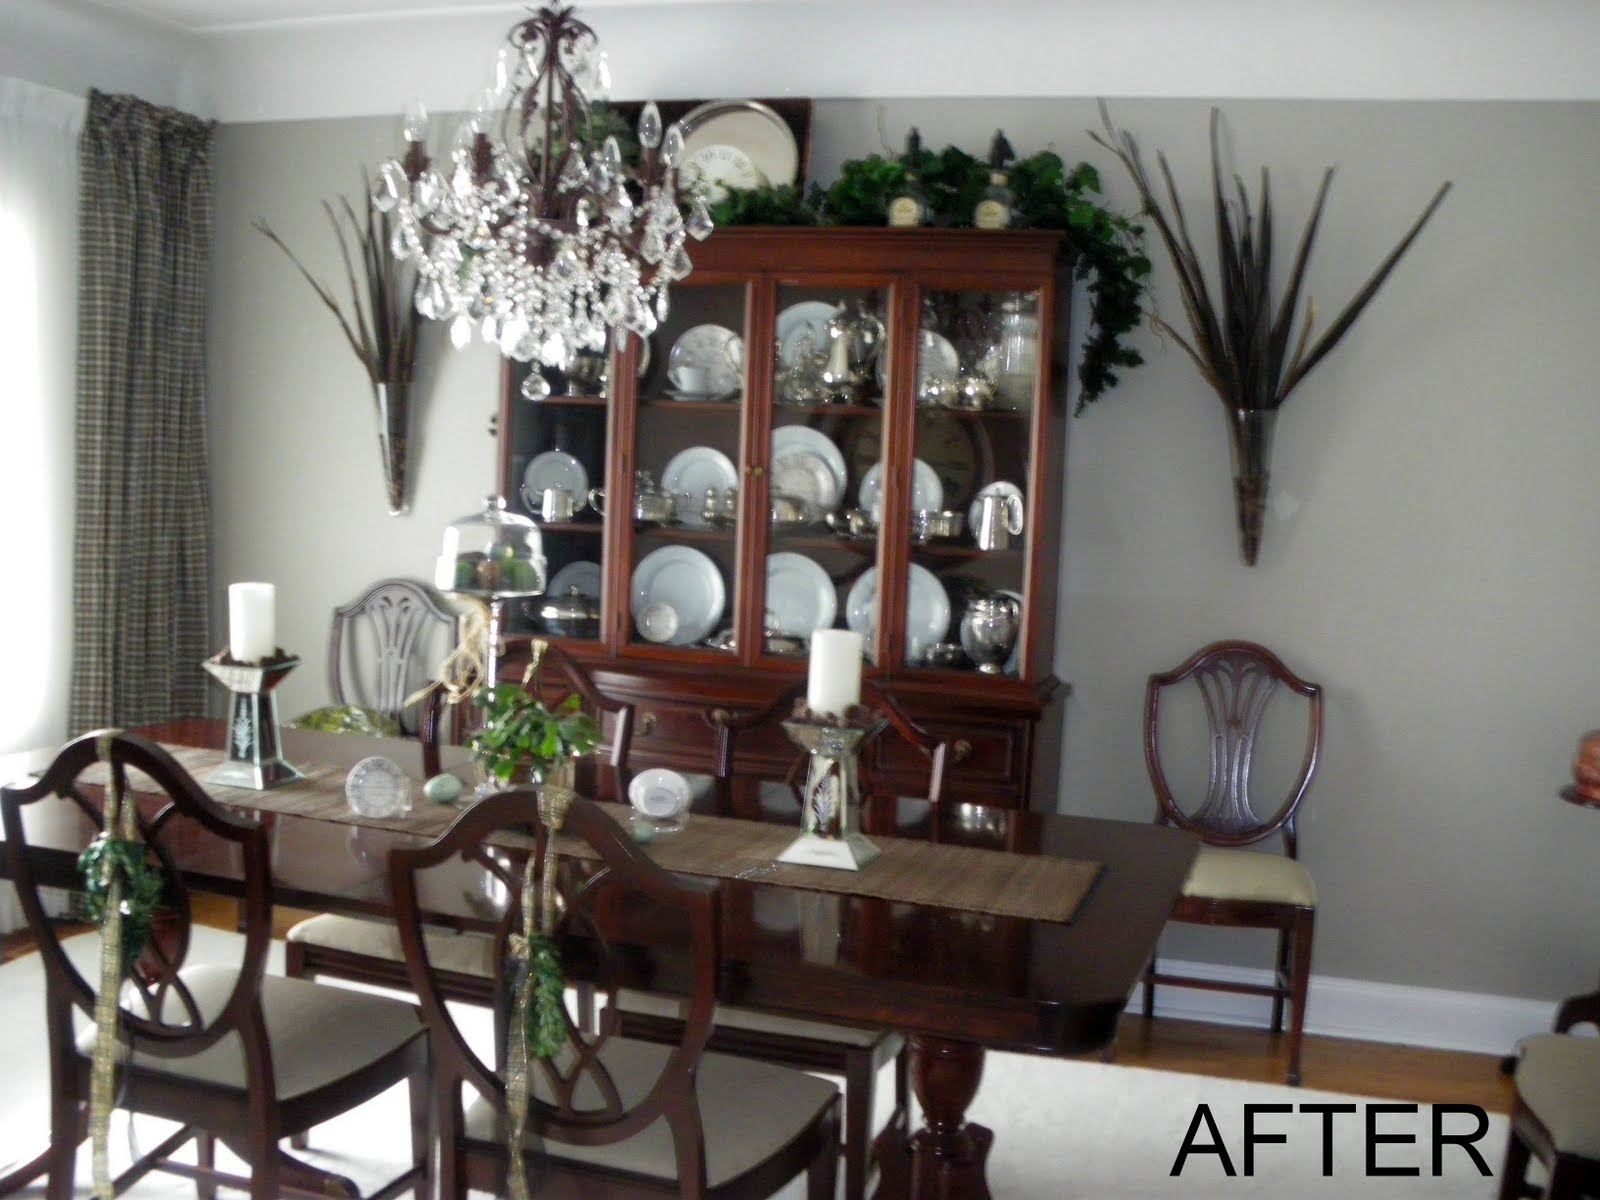 Dining Room Makeover Pictures to Pin on Pinterest - PinsDaddy